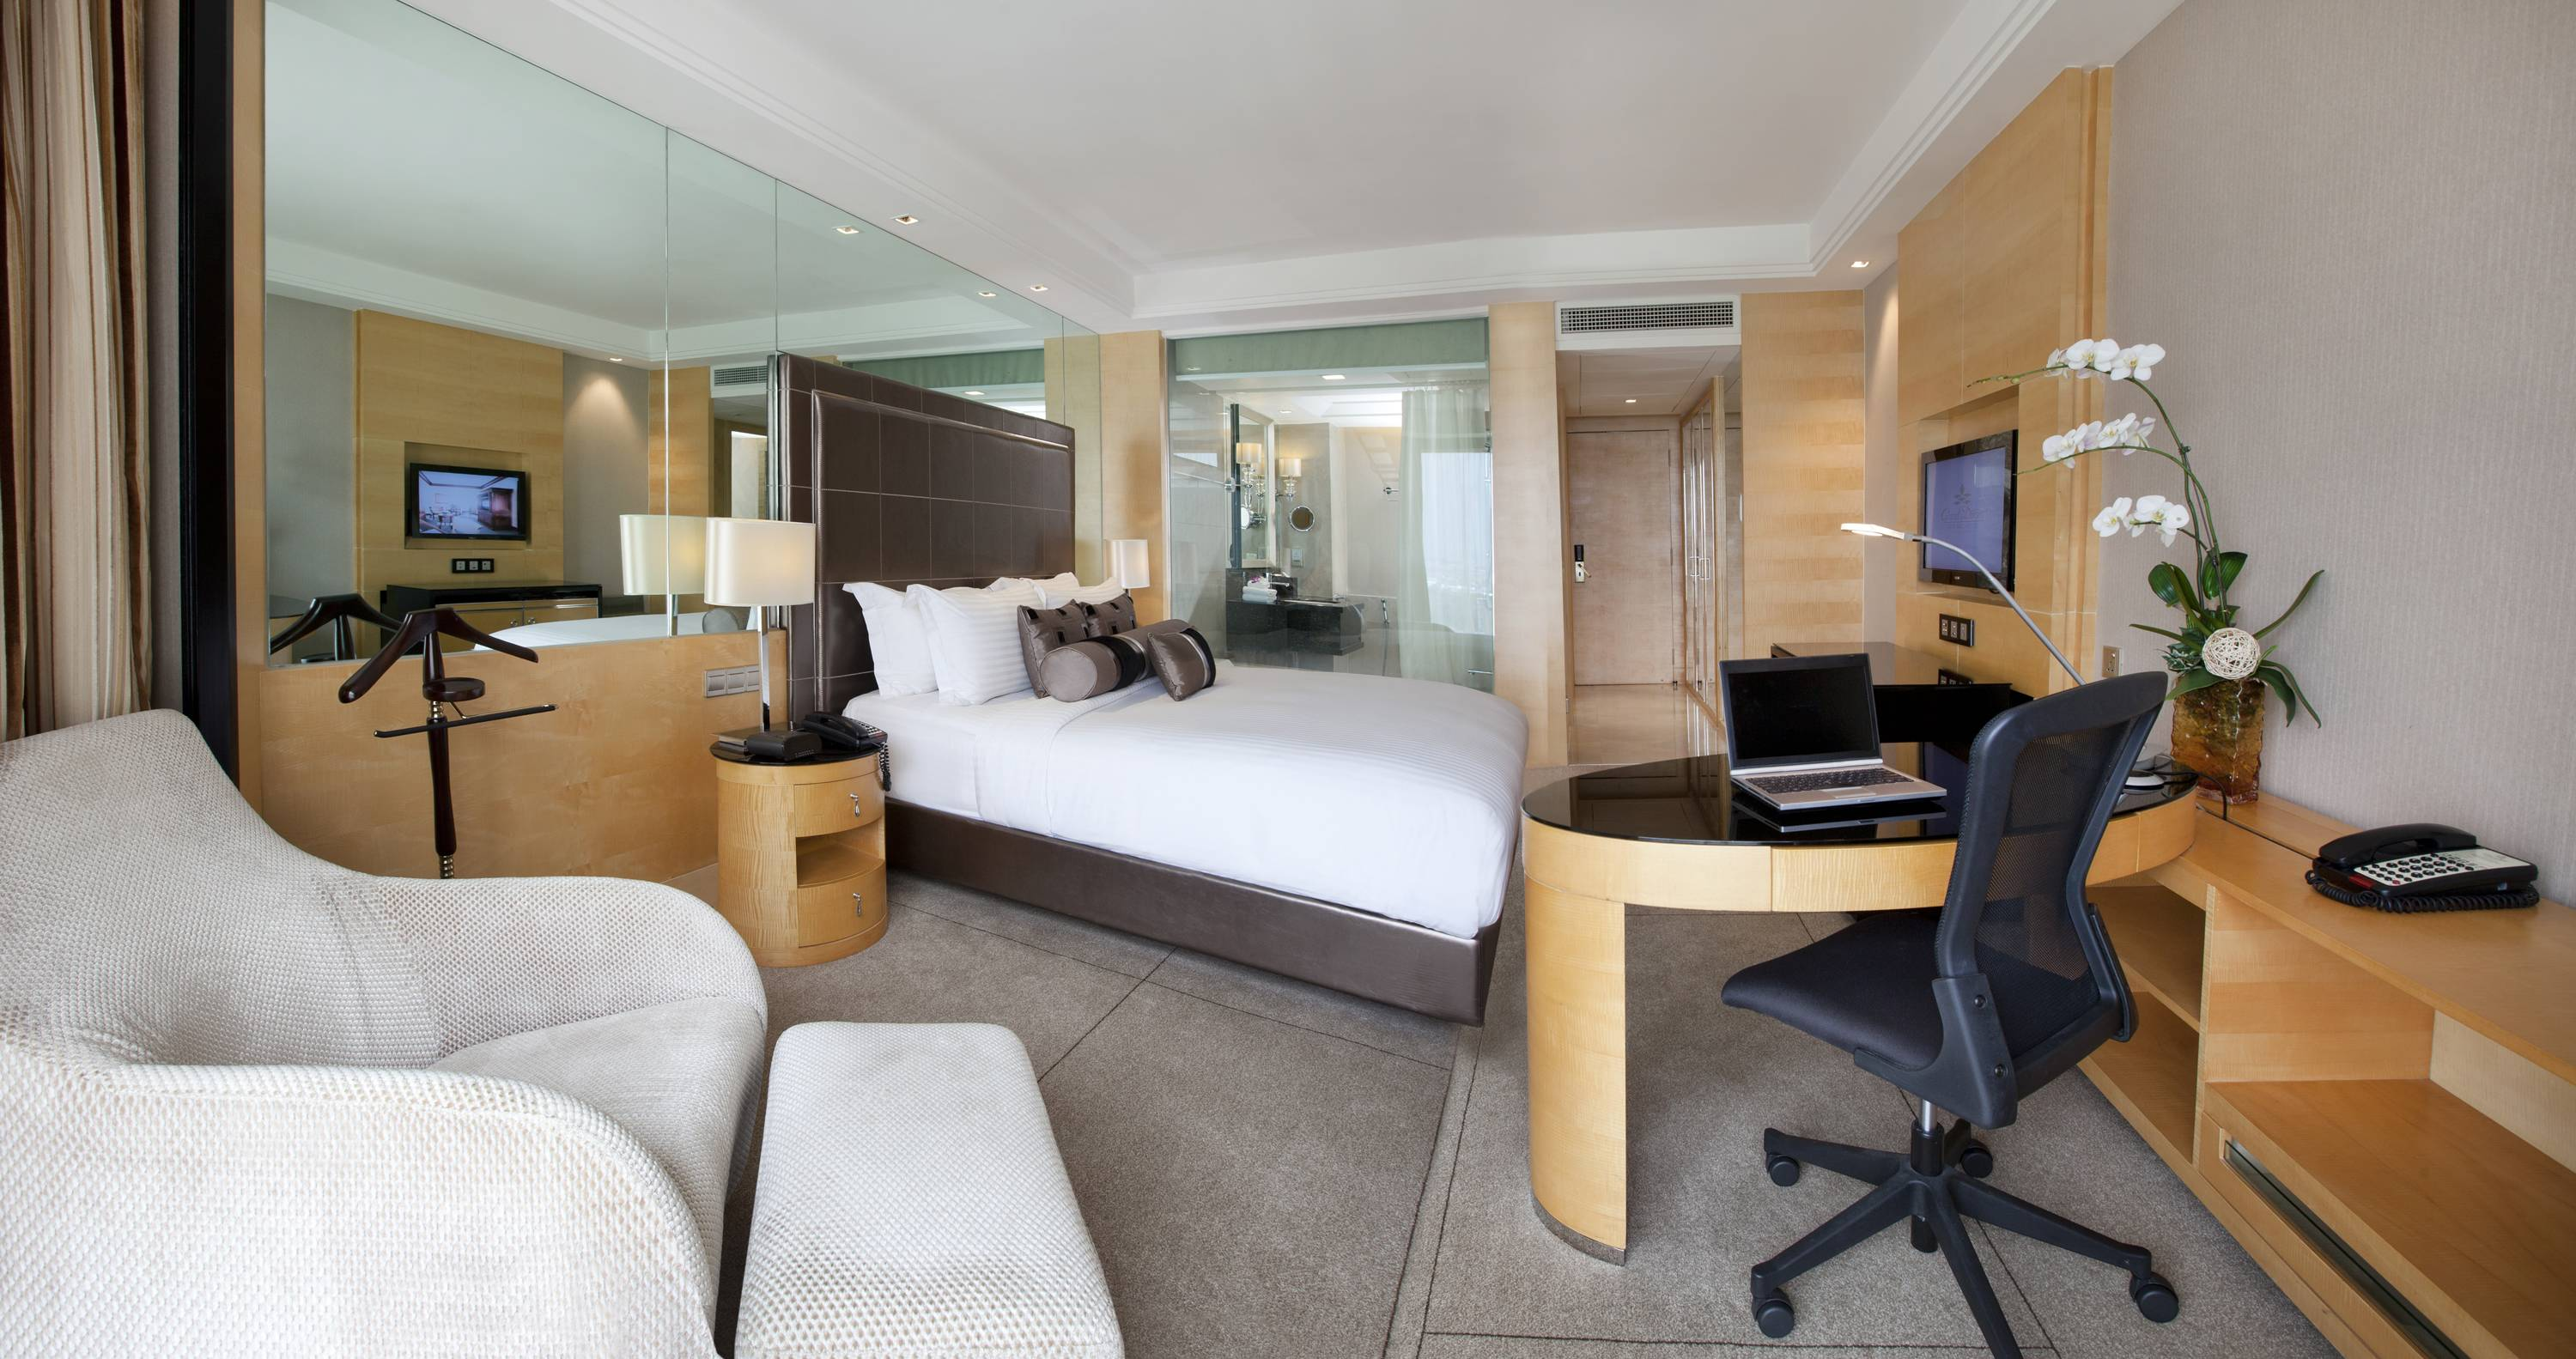 A higher level of accommodation - Club Room Living